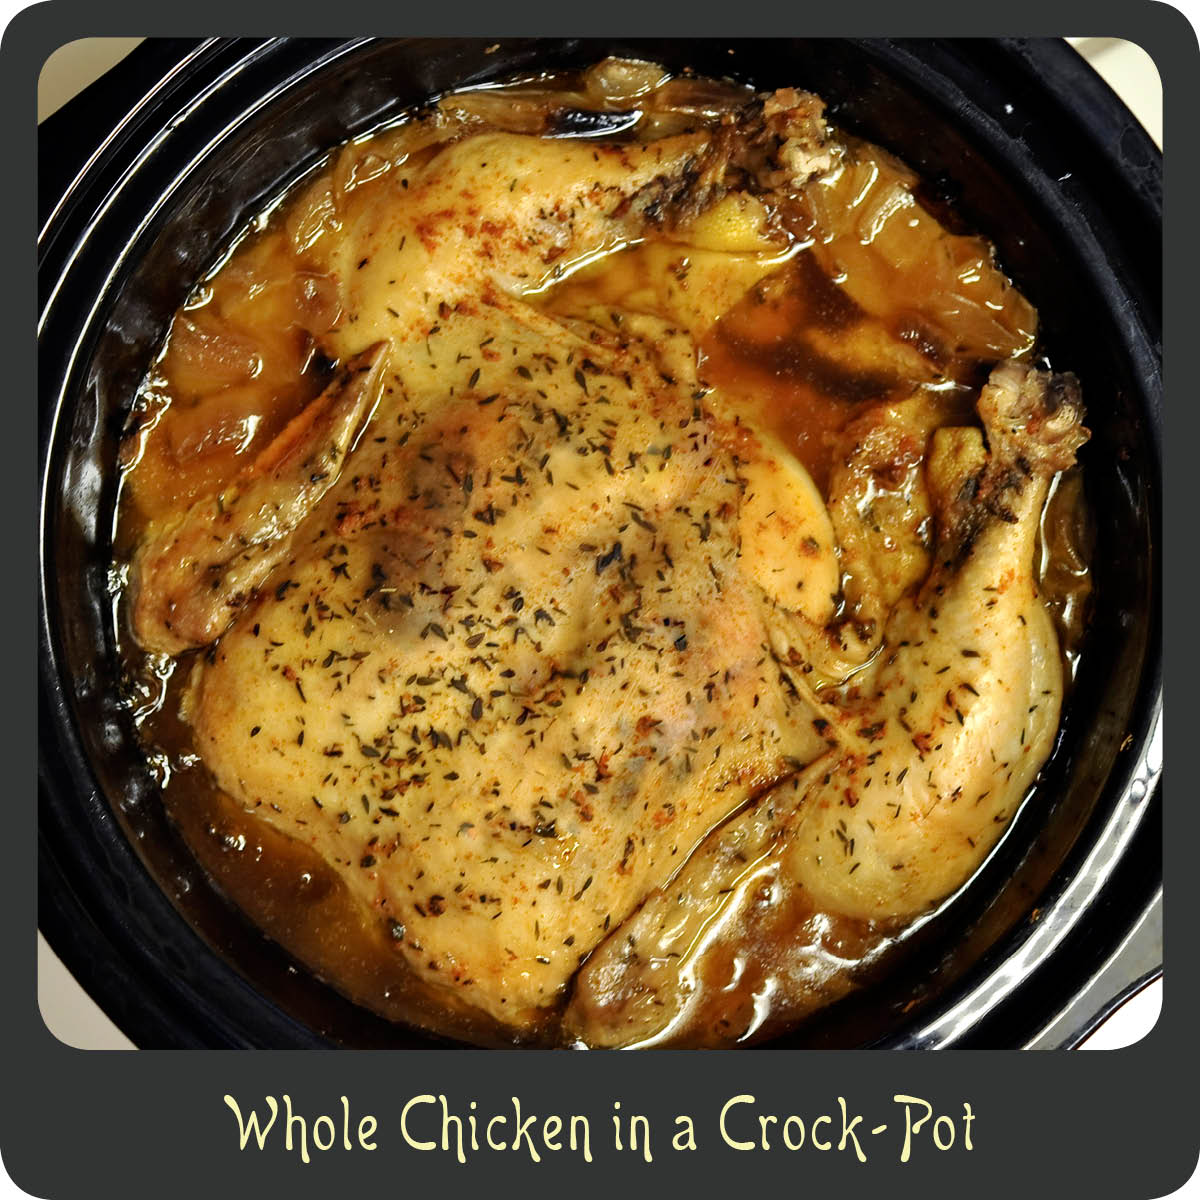 Feb 18,  · So, in honor of warmer days to come, I thought I'd share a fantastically easy recipe for Crock Pot Whole BBQ Chicken. You get all the flavor of that good ole summertime BBQ but you don't need to go outside and fire up a grill.5/5(7).